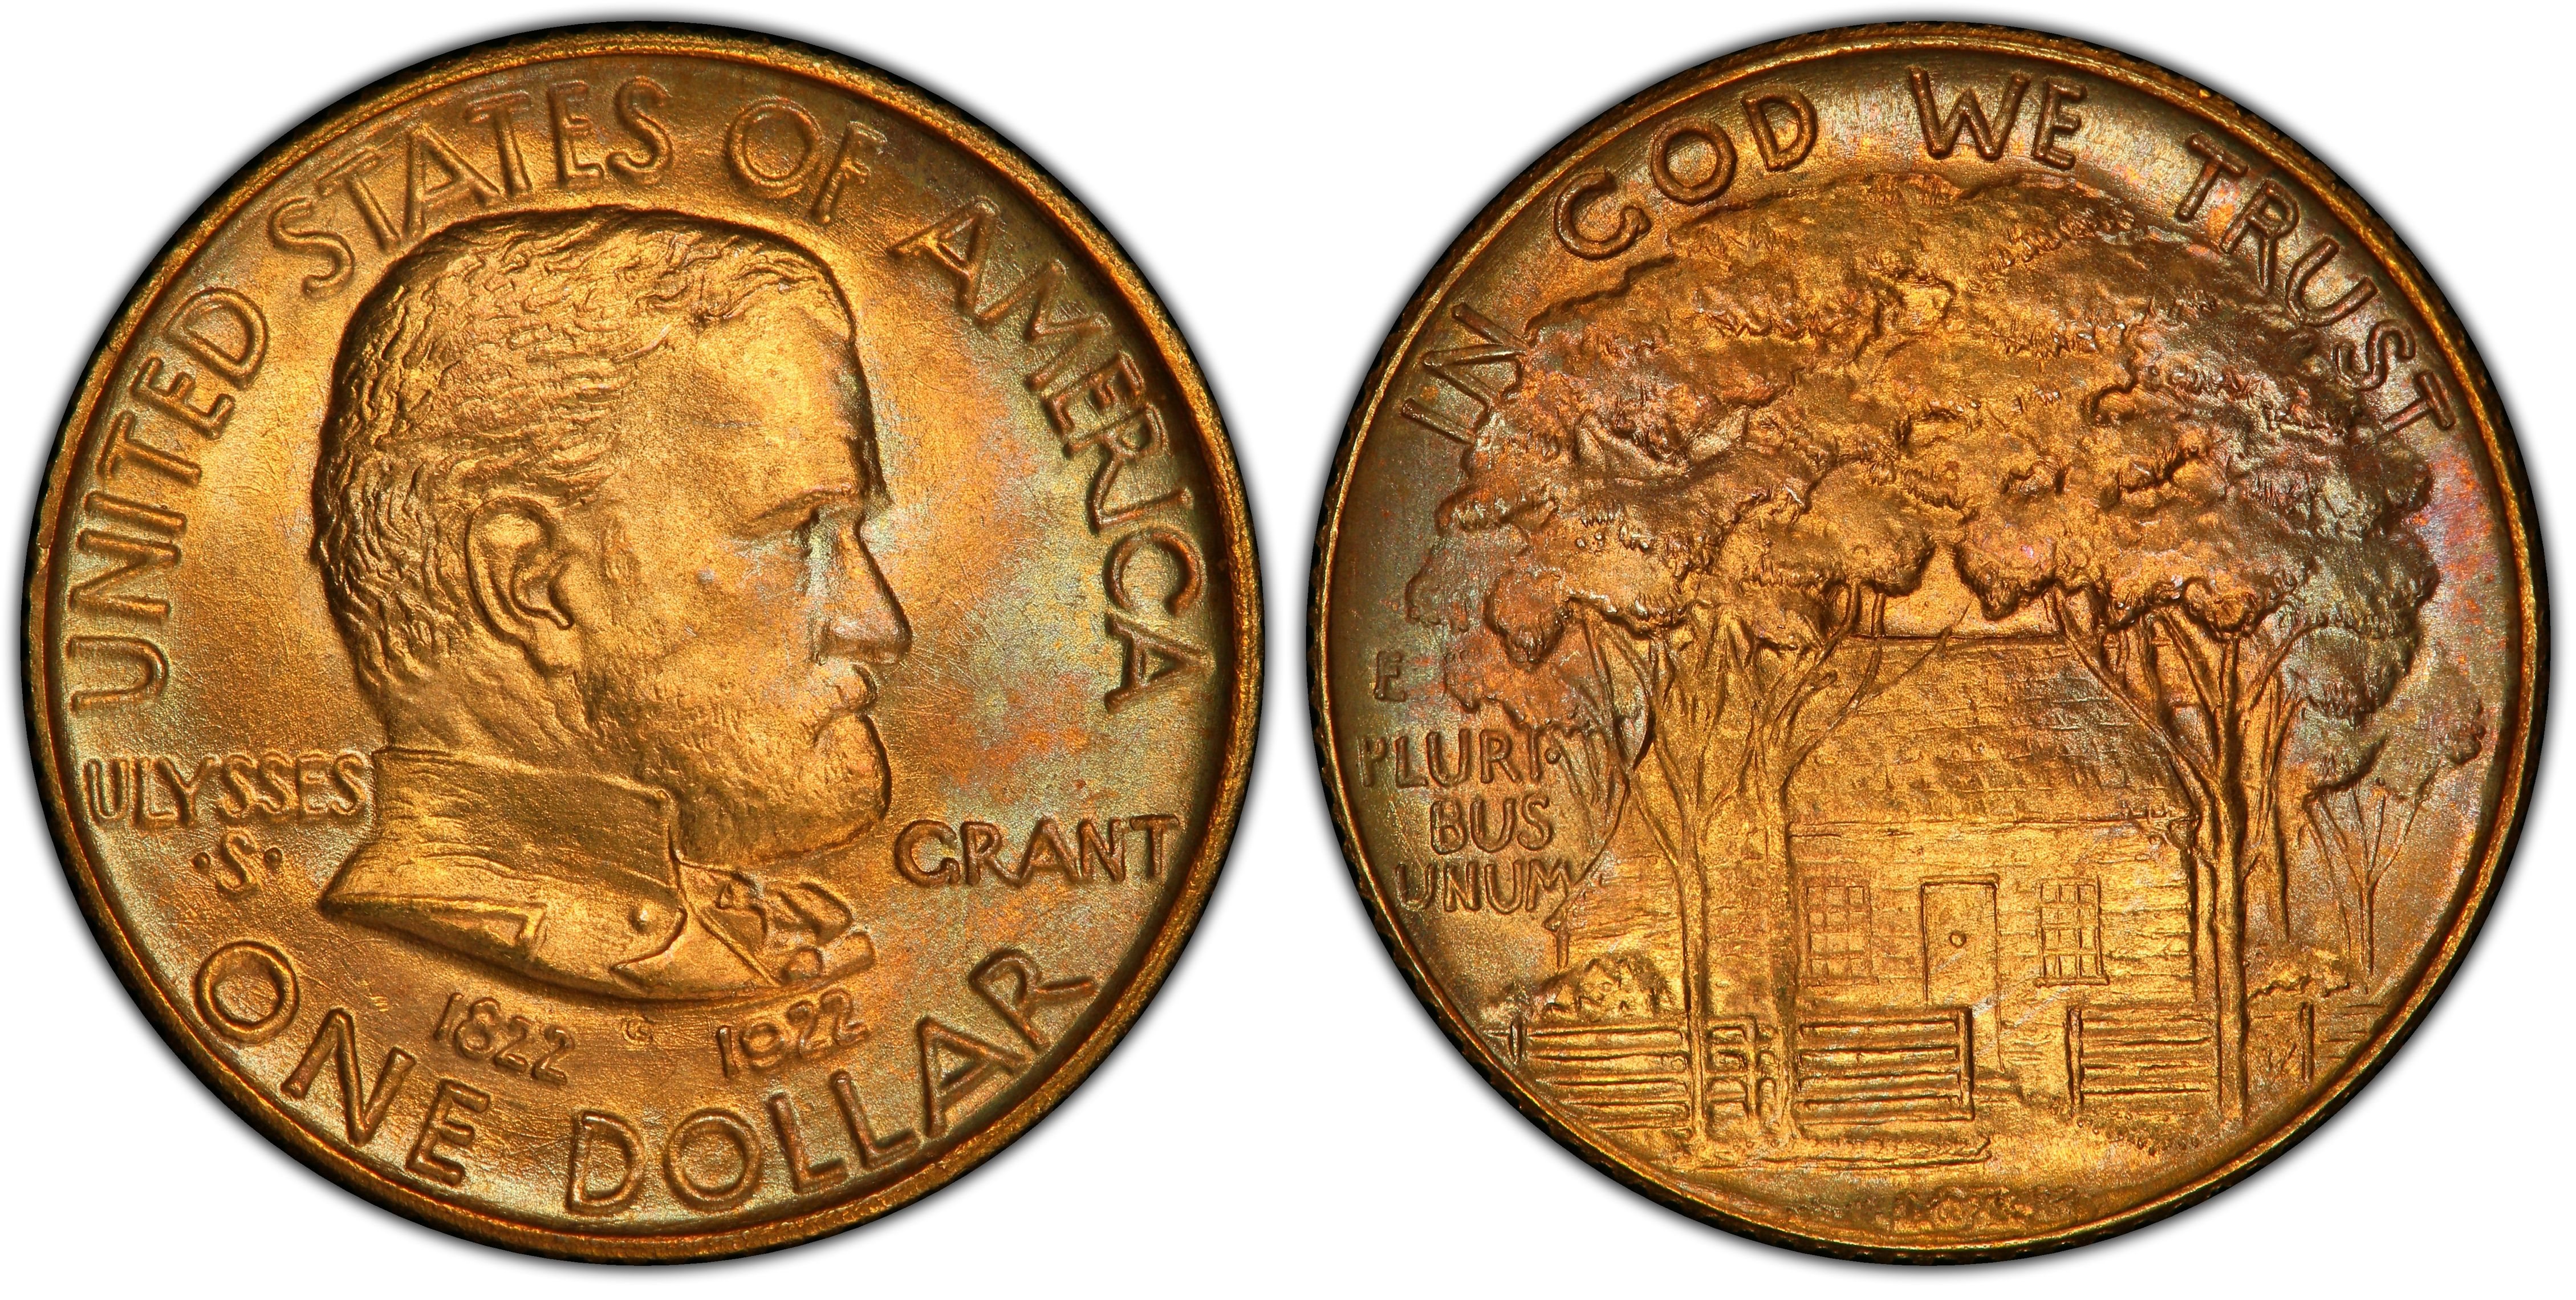 Grant Centennial Gold Dollar Commemorative Grant Centennial Gold Dollar Commemorative Without Star